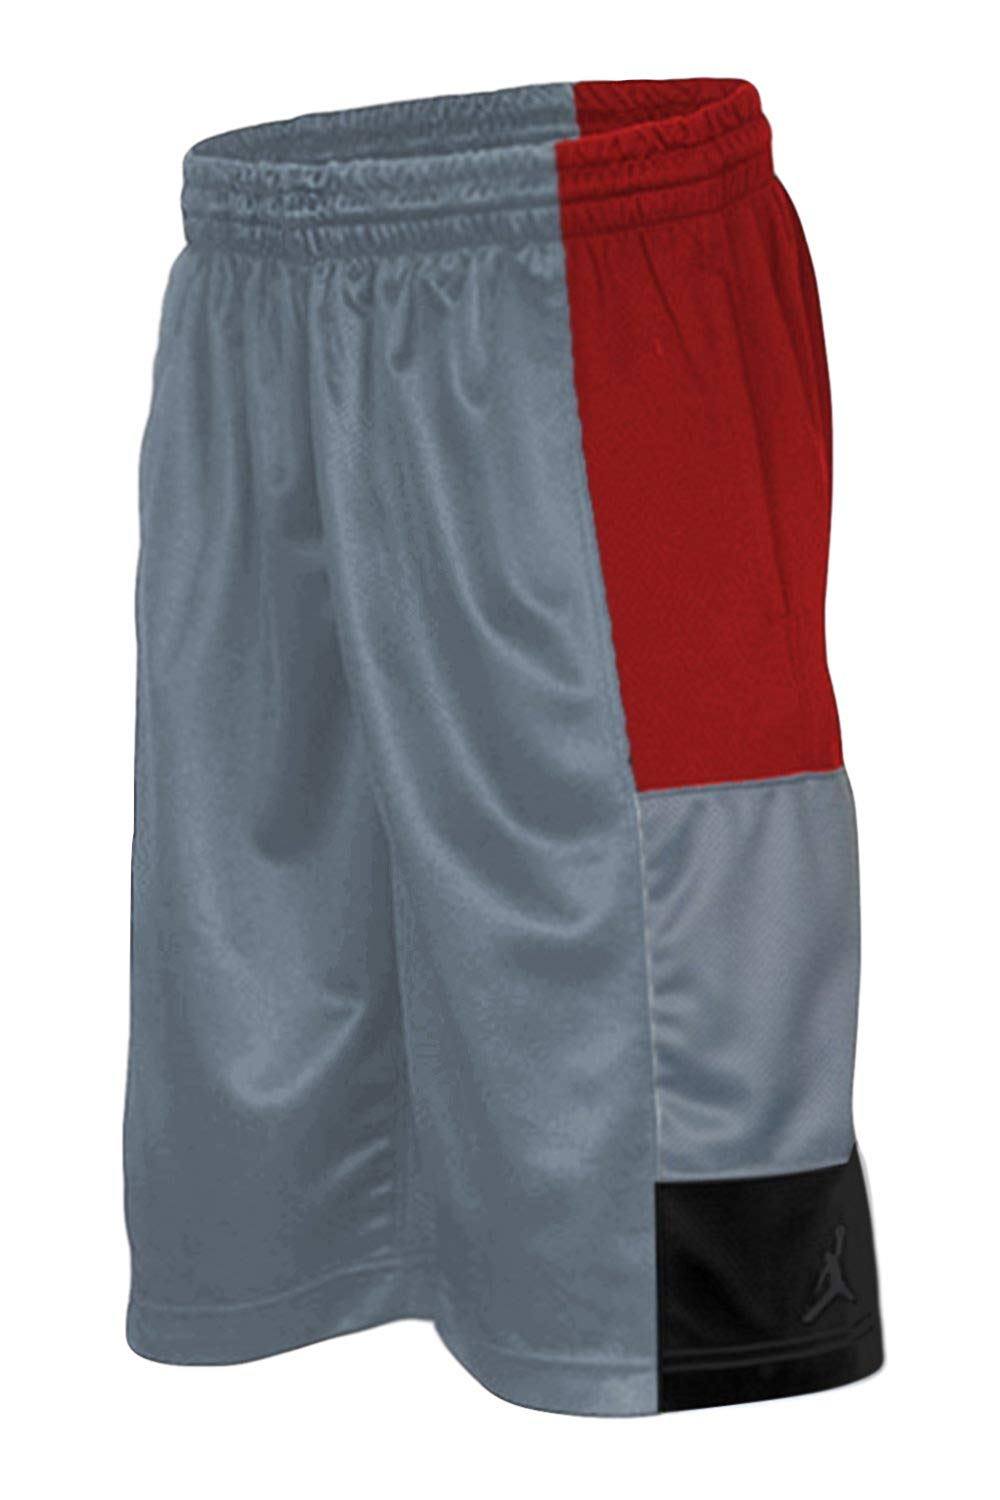 2b67bd66792 Get Quotations · Boys' Jordan Trillionaire Basketball Shorts, Cool Grey,  Black, Red, Medium